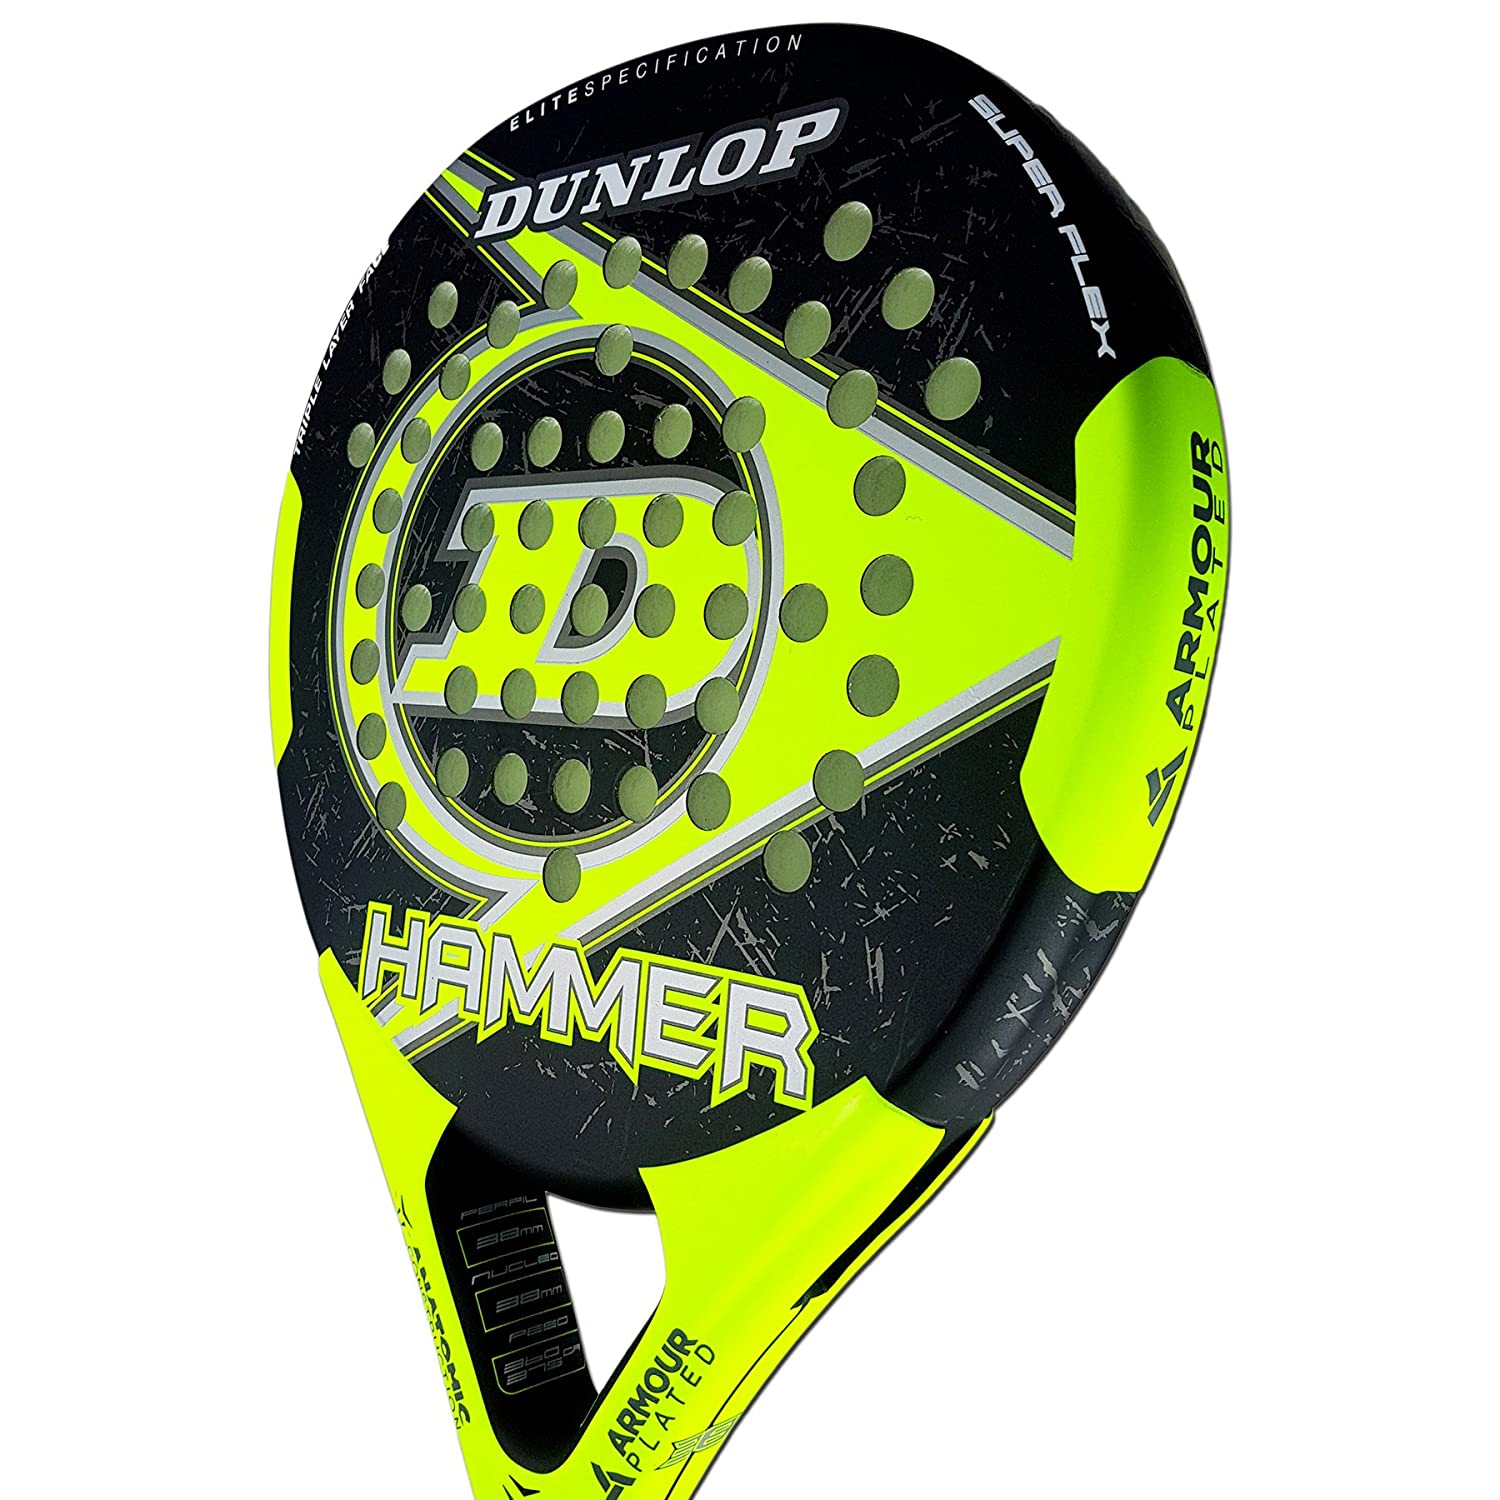 Amazon.com: DUNLOP Hammer Tenis Racket, Unisex Adulto ...